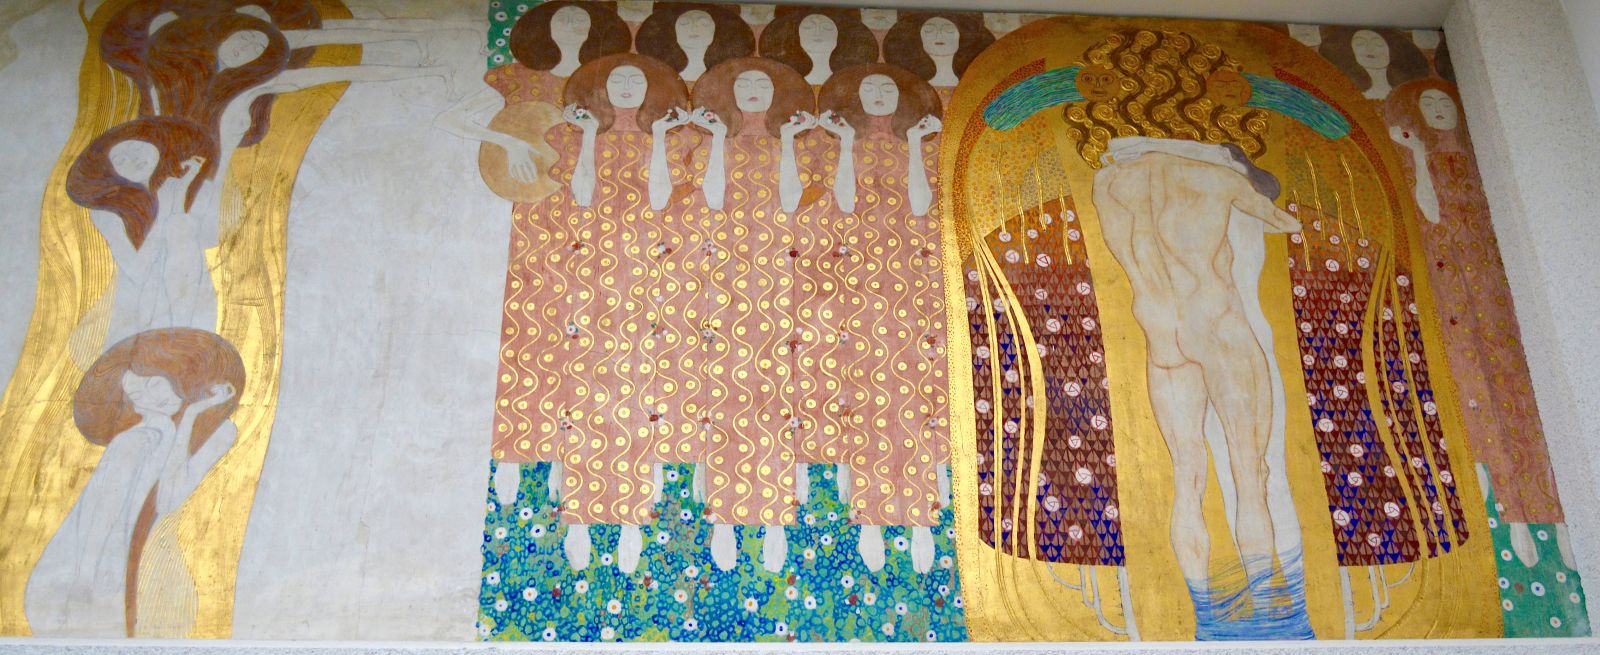 beethoven-frieze-klimt-secession-vienna